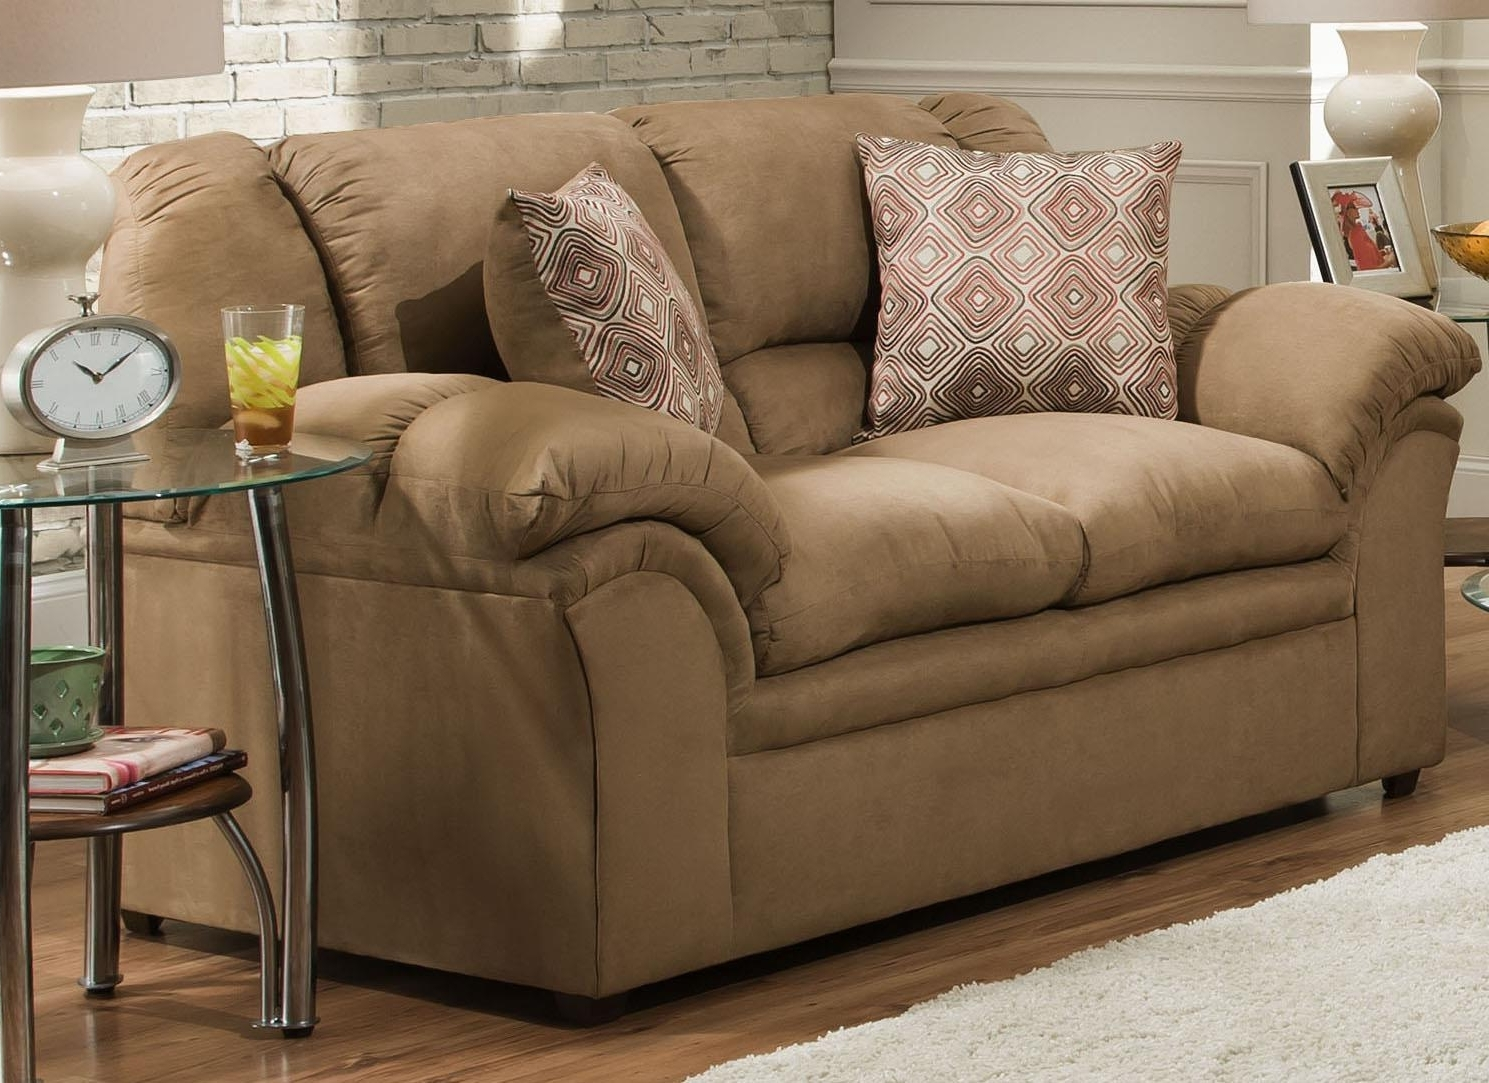 Jacksonville Nc Sectional Sofas With Regard To Most Popular United Furniture Industries 1720 Love Seat (View 5 of 20)